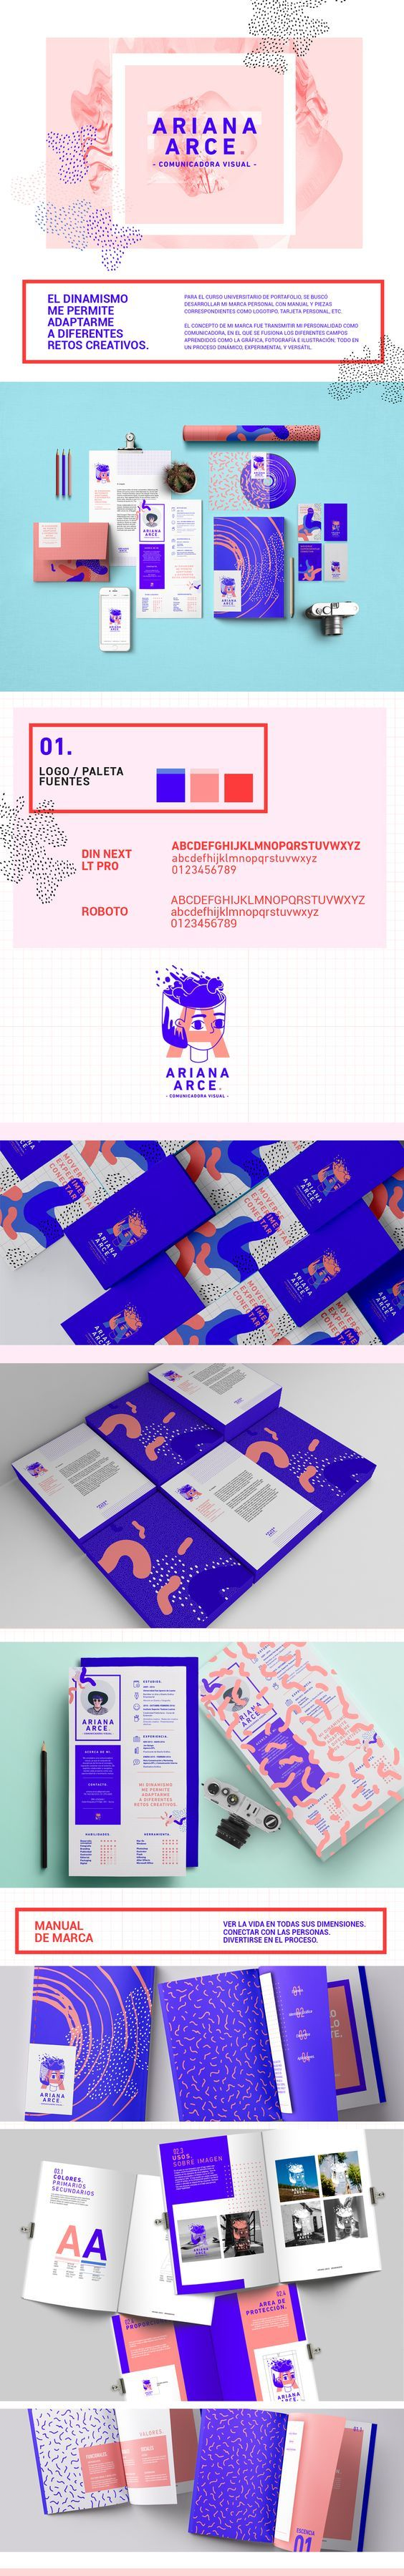 Visual Communications Branding by Ariana Arce Salazar | Fivestar Branding Agency – Design and Branding Agency & Curated Inspiration Gallery